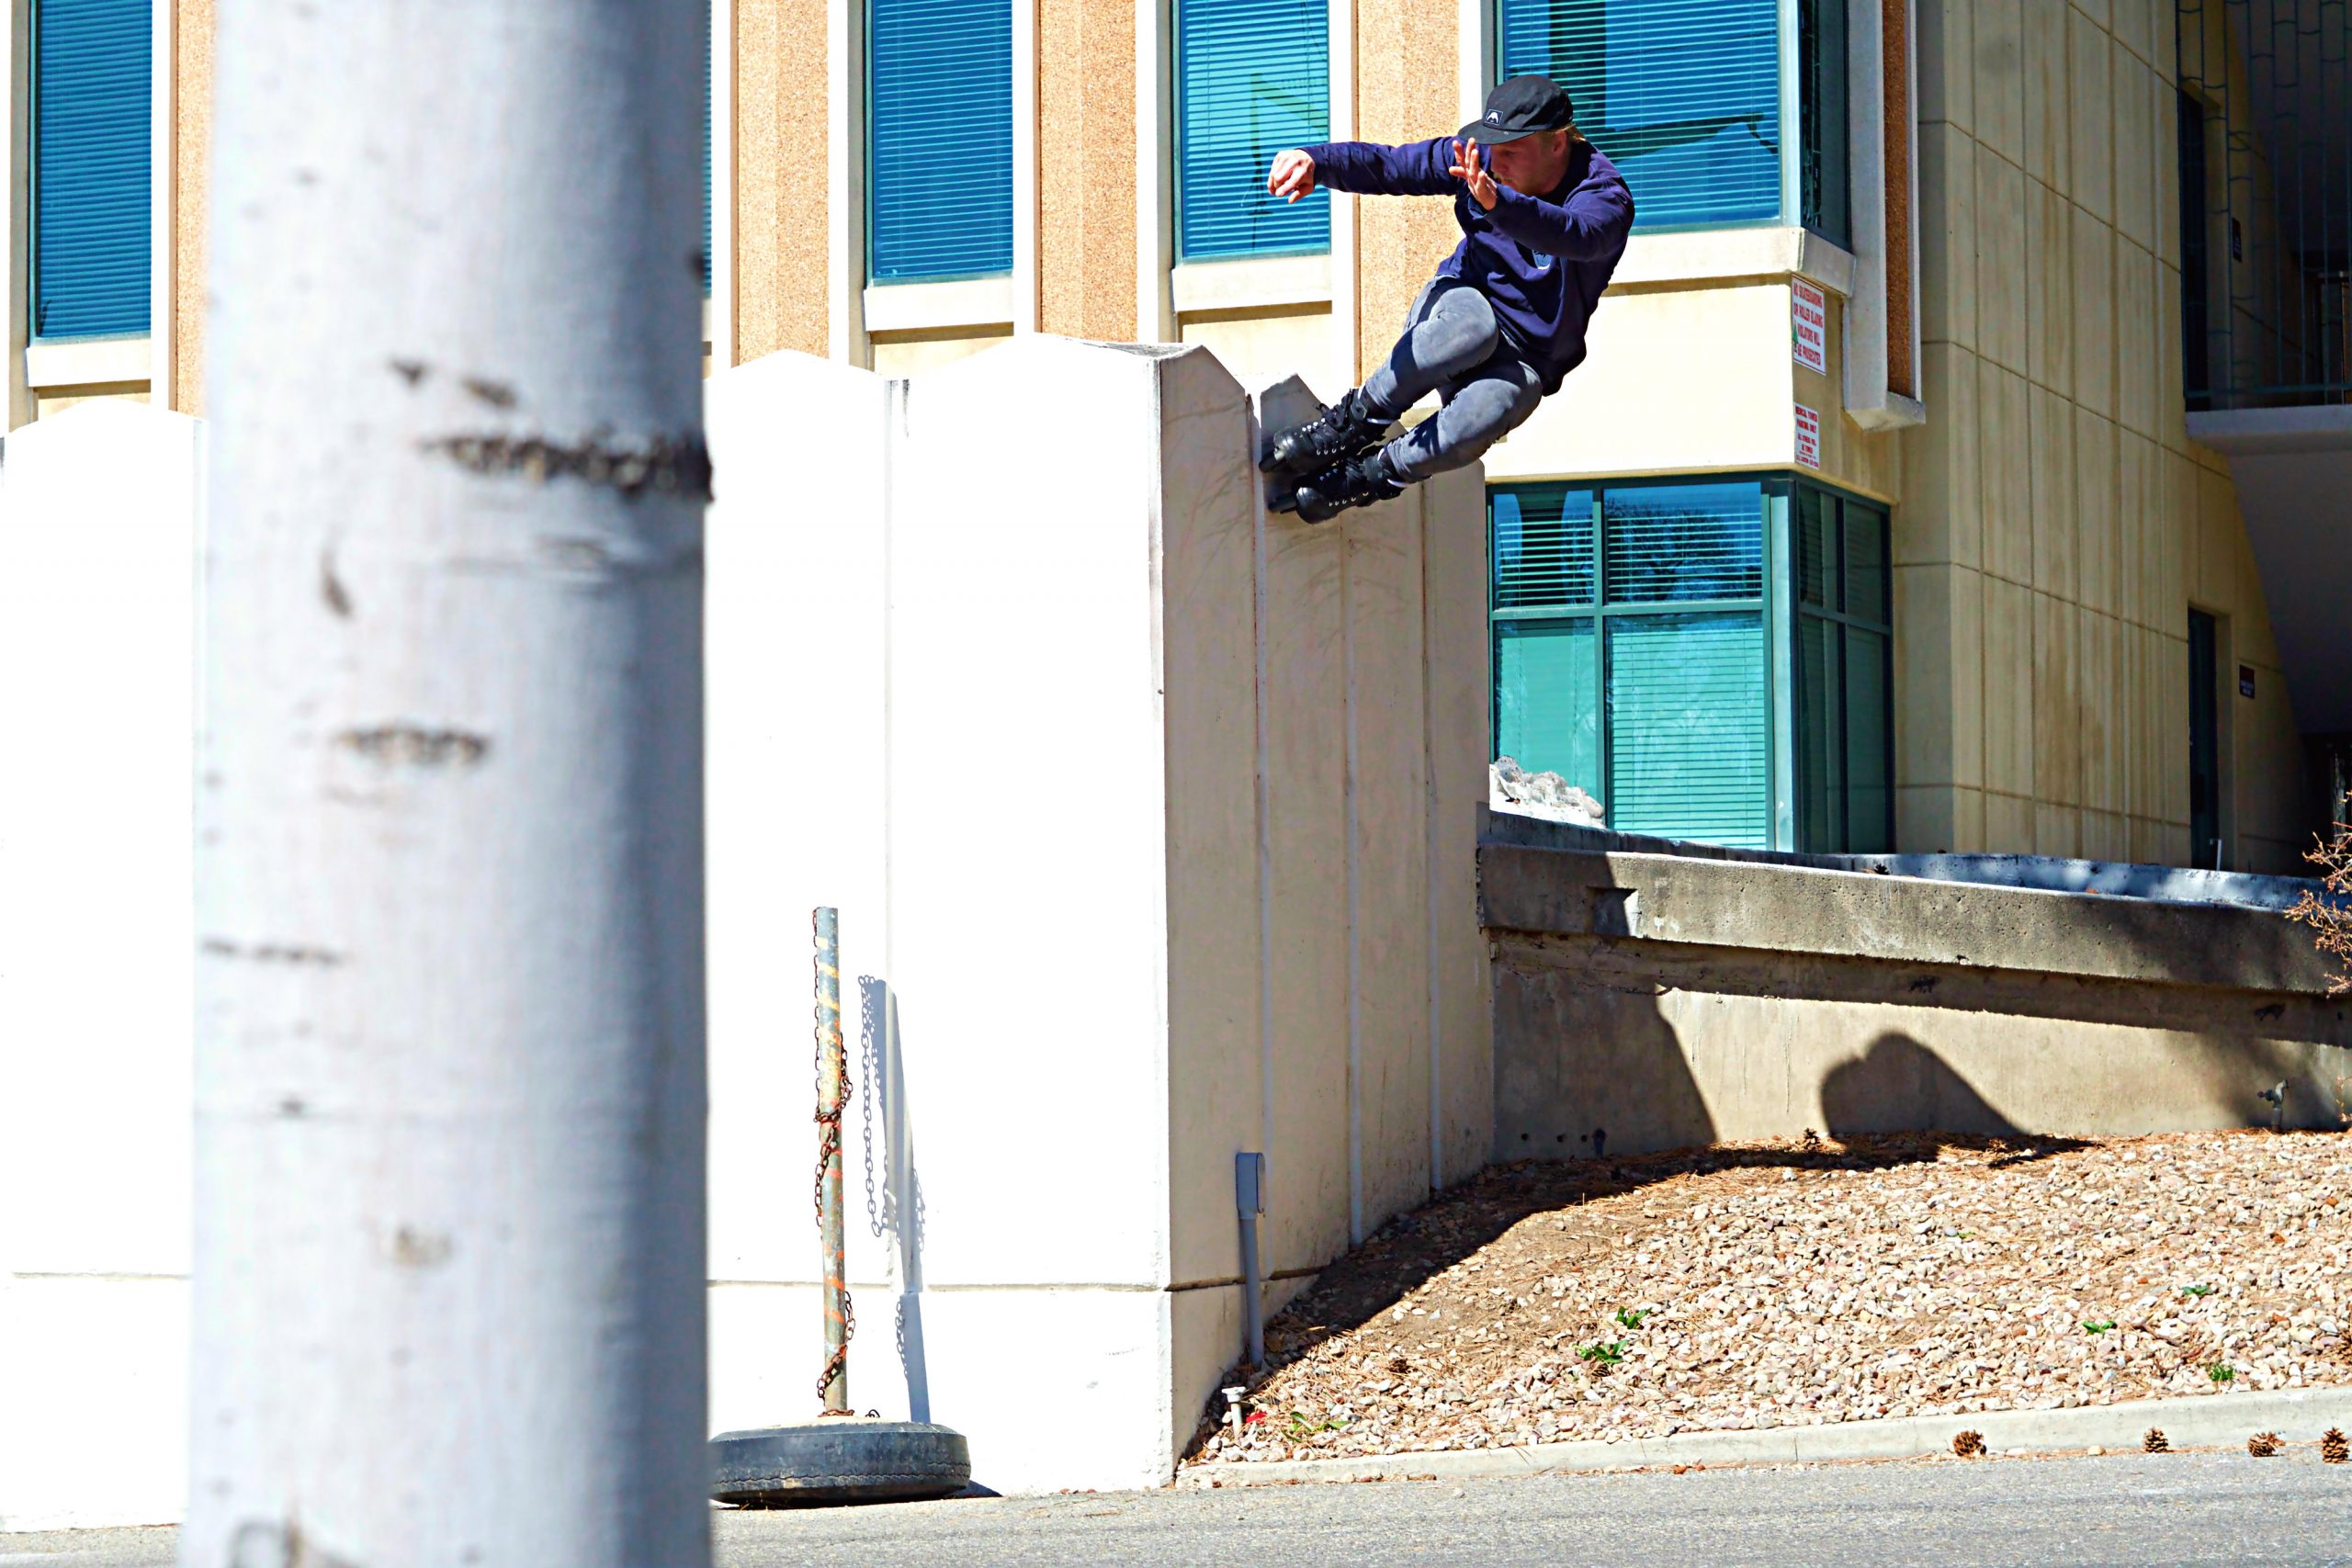 Hazen Bell Wallride Photo by Kirill Braynin